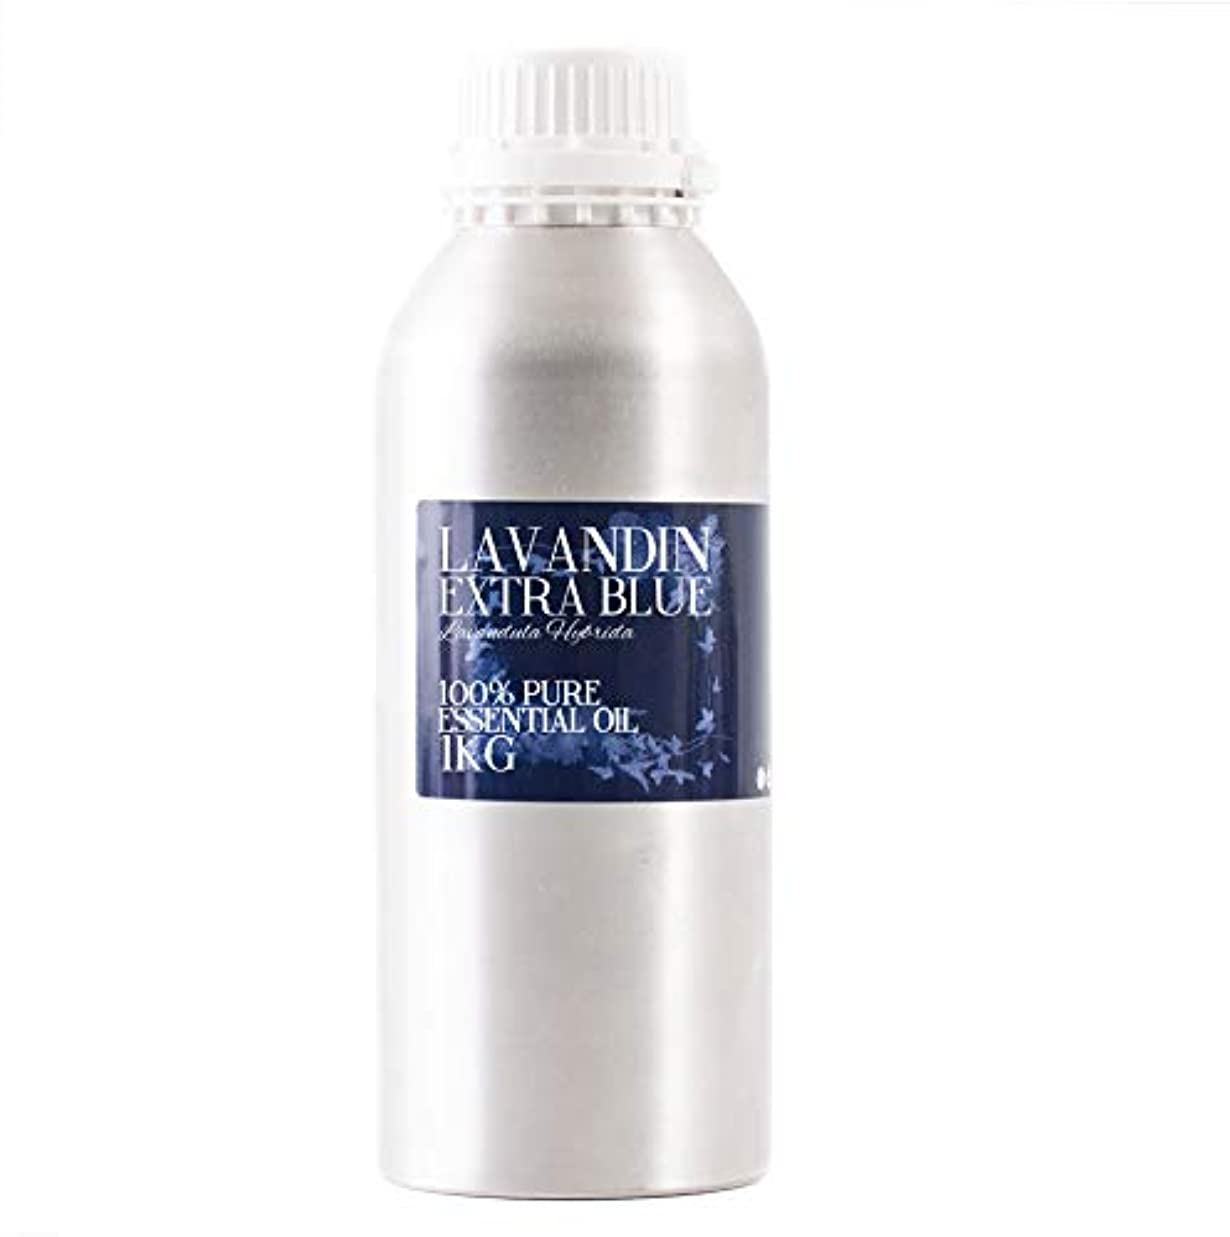 オーバーラン露骨な有毒なMystic Moments | Lavandin Extra Blue Essential Oil - 1Kg - 100% Pure